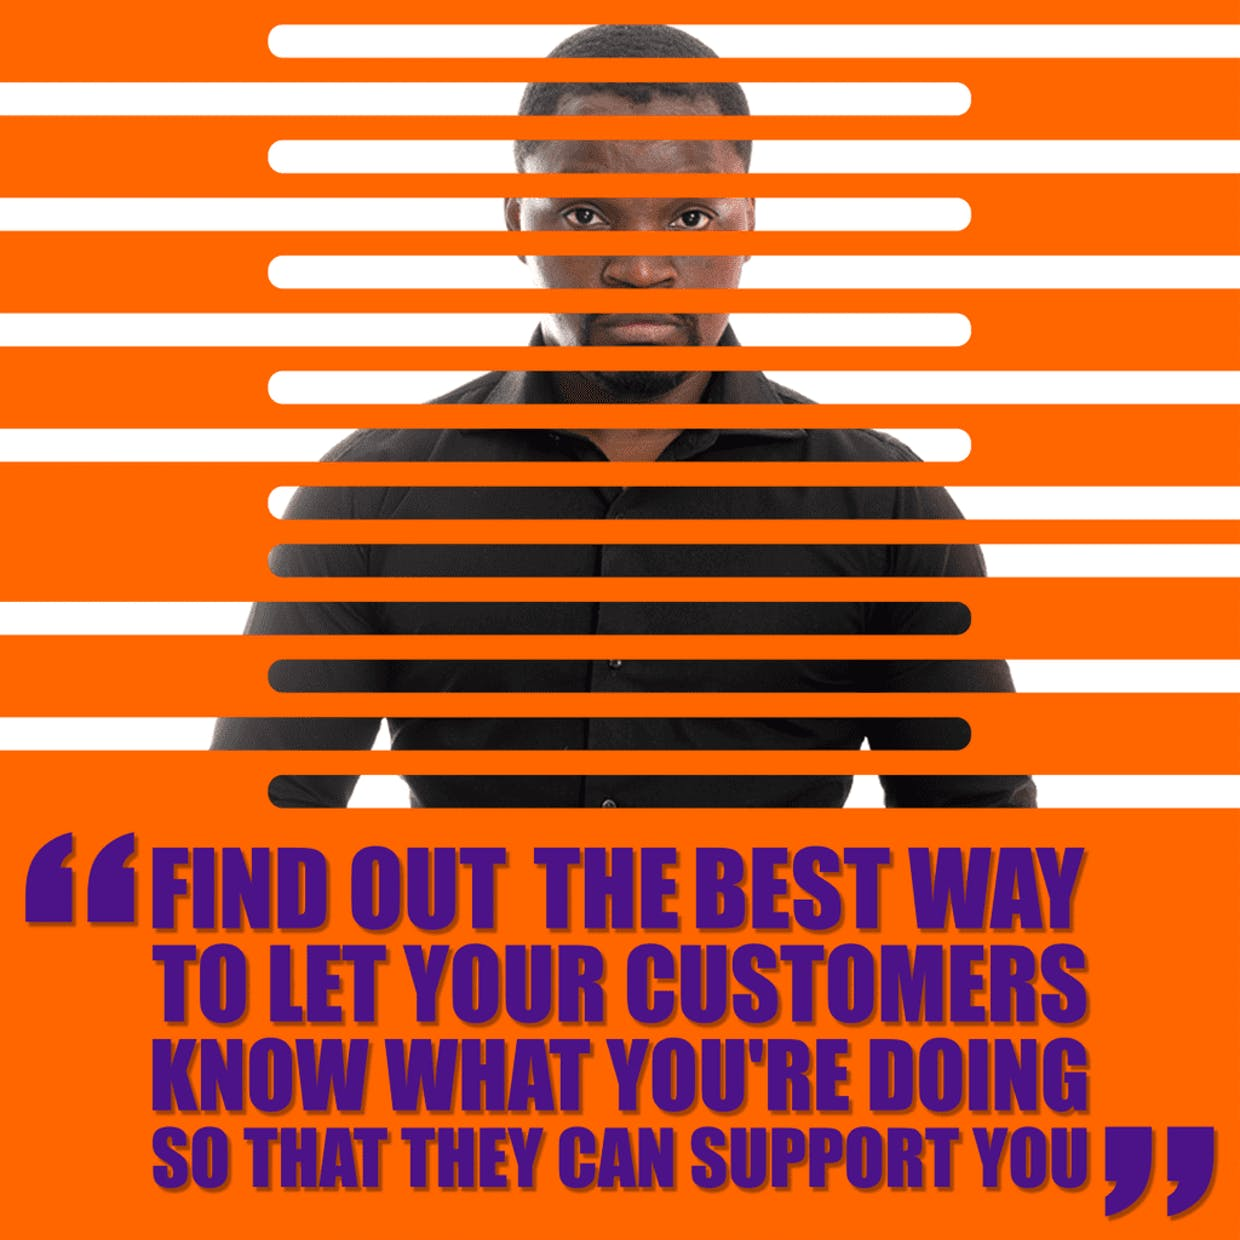 Don't behind your brand- show up and help people by actually helping them.